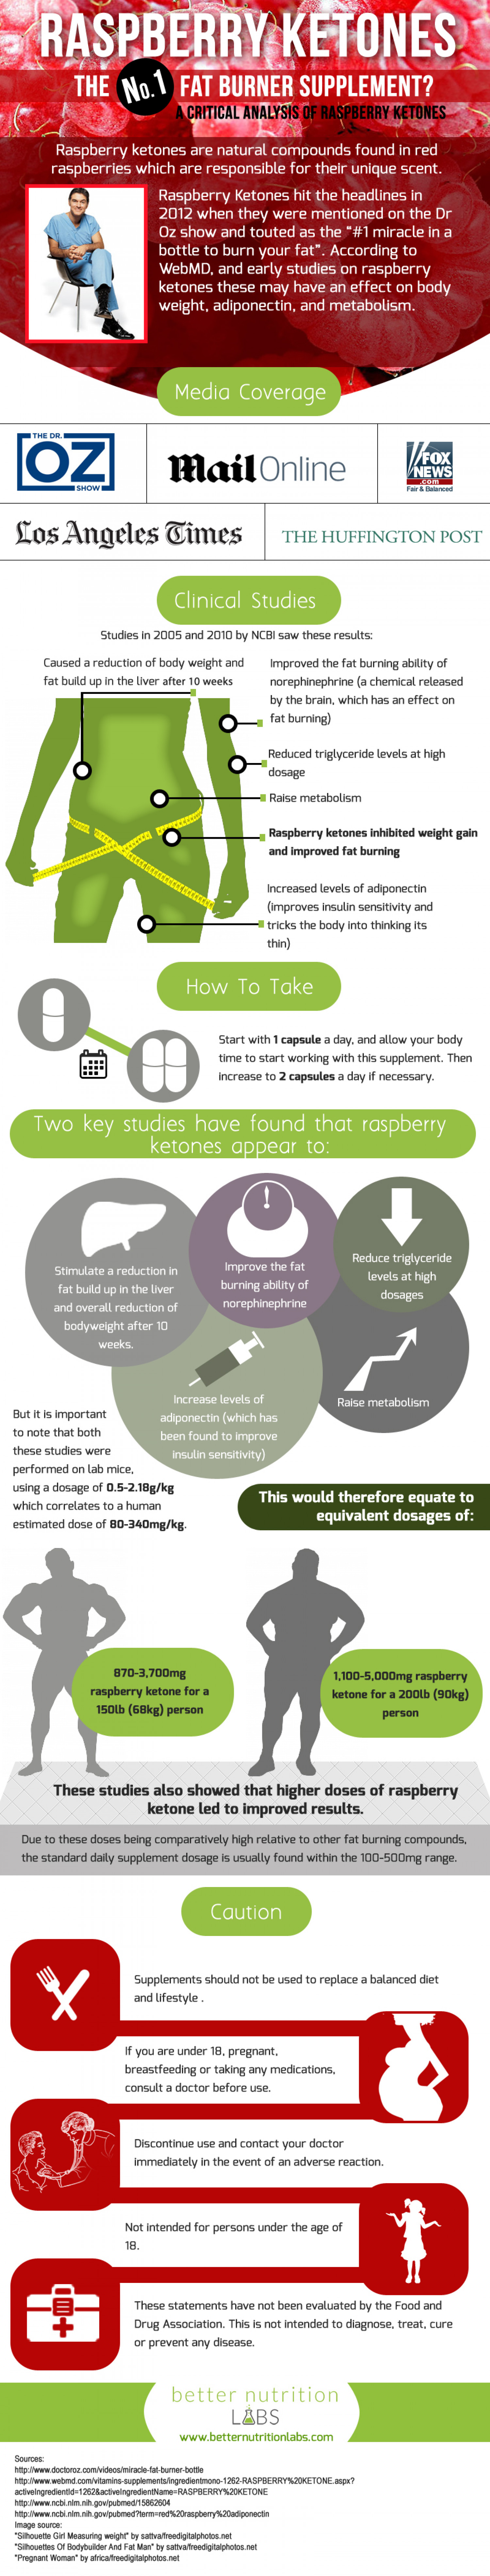 How effective is Raspberry Ketone for weight loss? Infographic